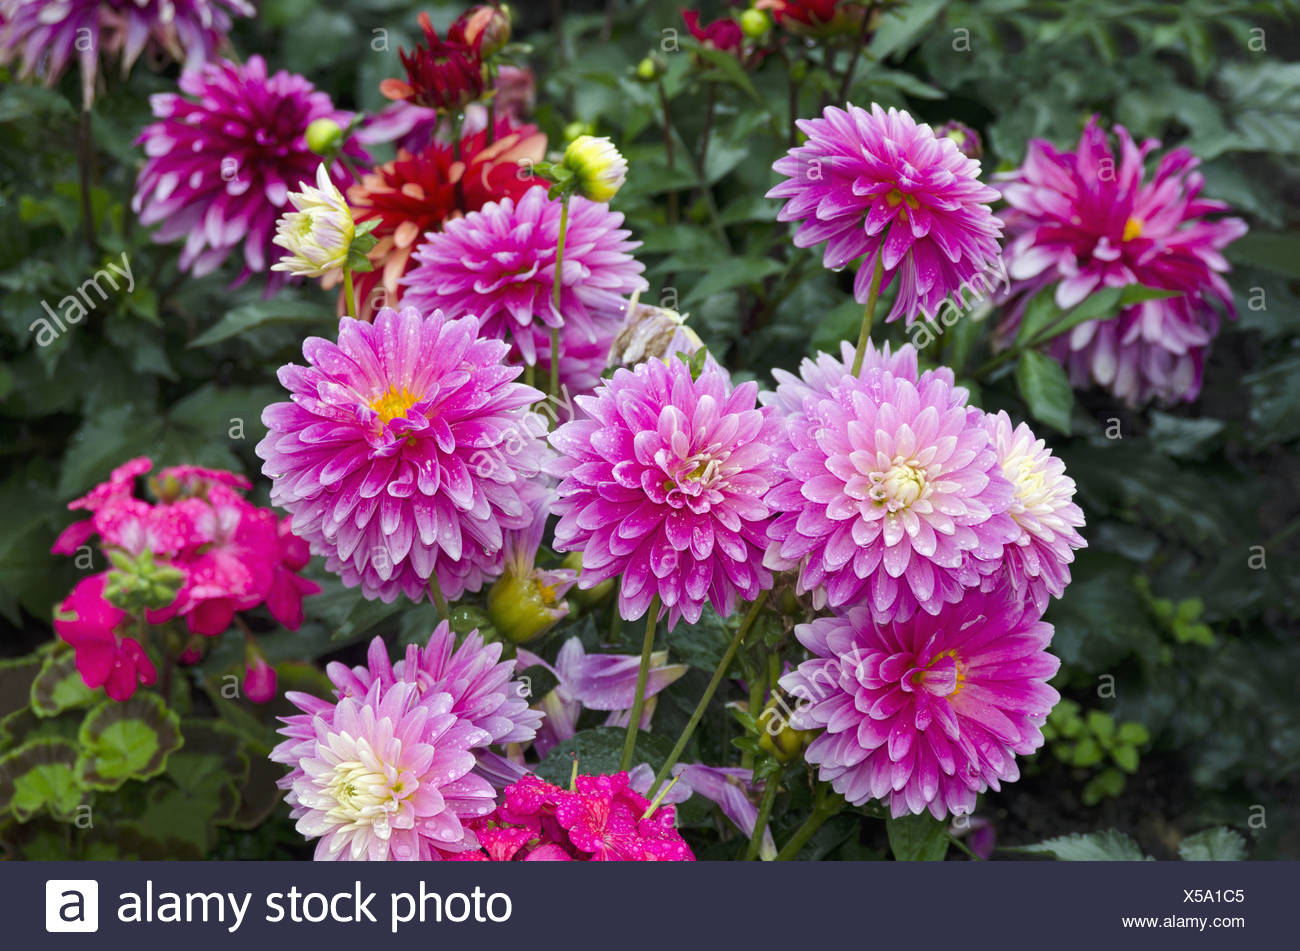 A Bunch Of Colorful Dahlia Flowers Herbaceous Perennial Plant